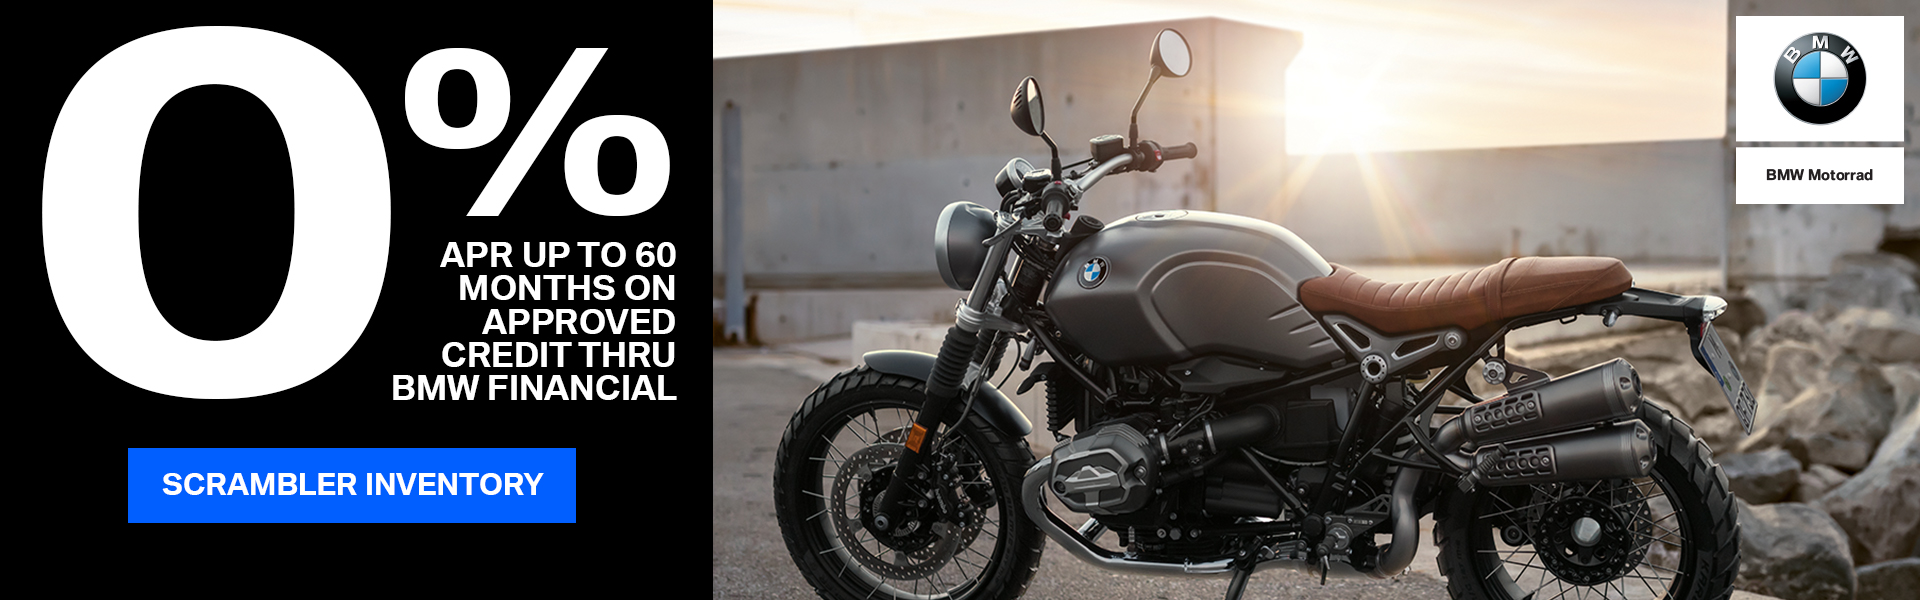 New Motorcycles and Service | BMW Motorcycles of San Francisco